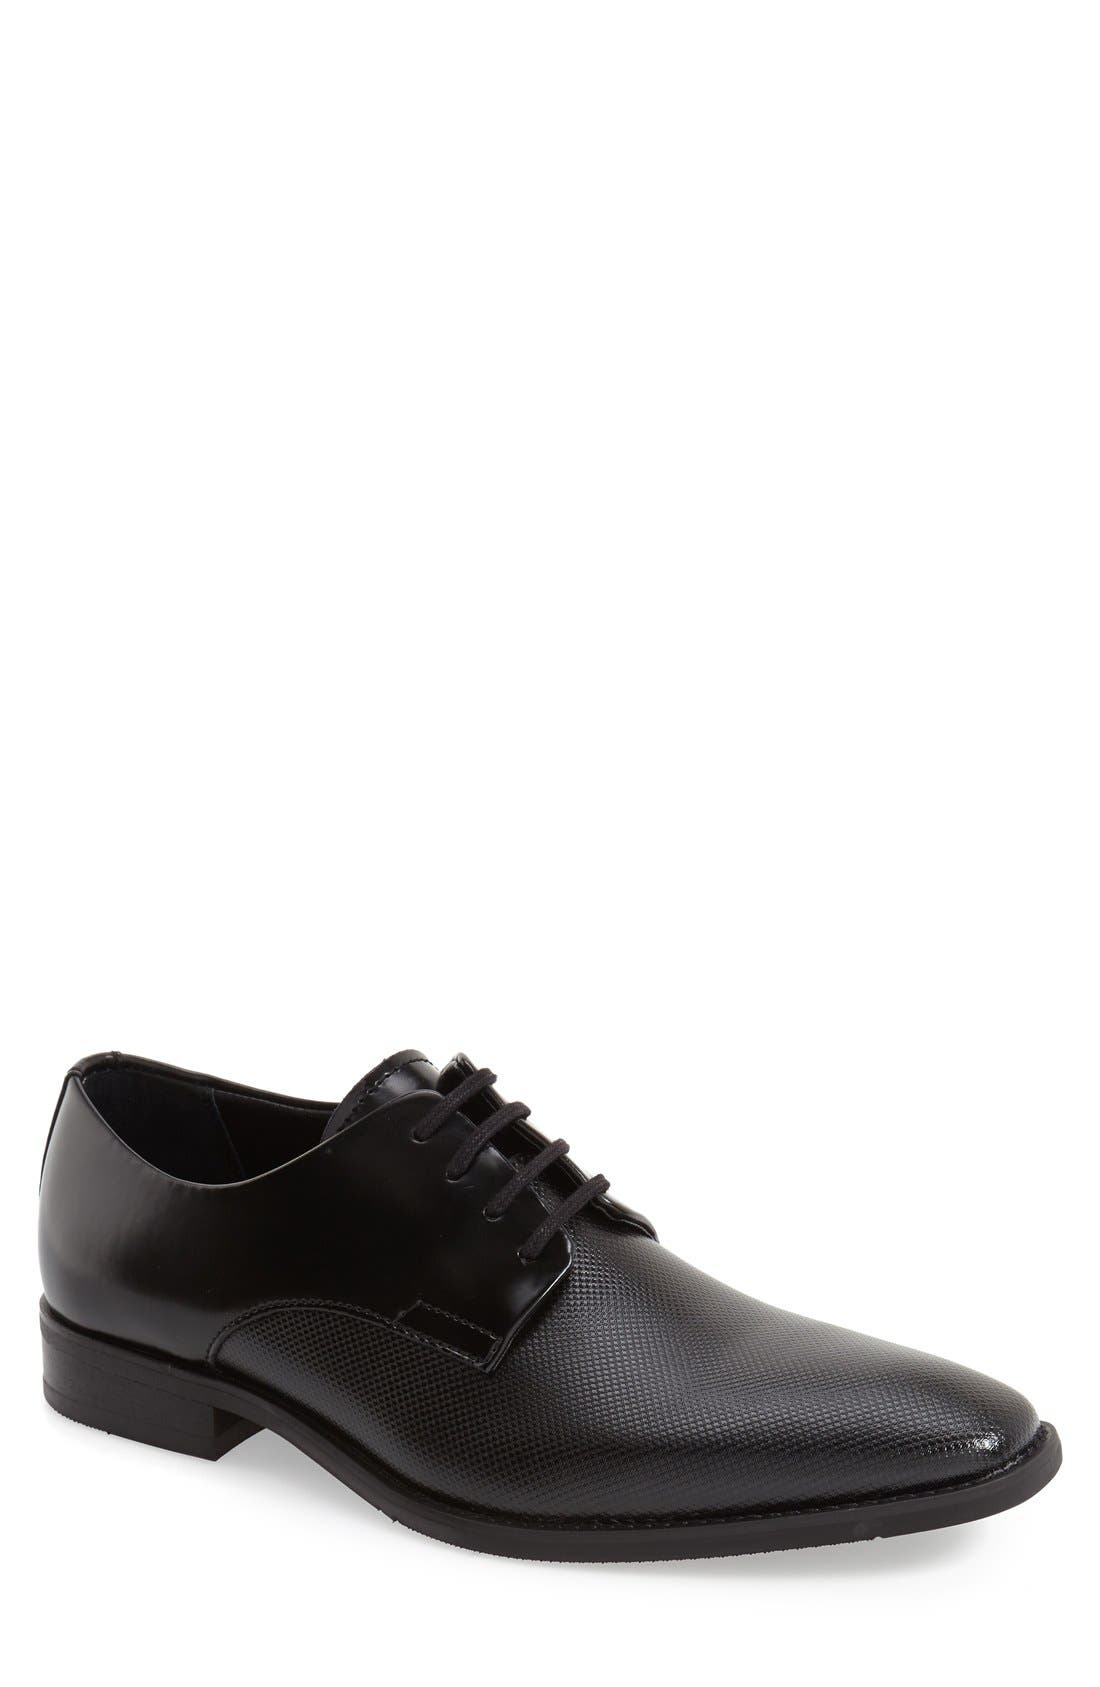 Alternate Image 1 Selected - Calvin Klein 'Ramses' Plain Toe Derby (Men)